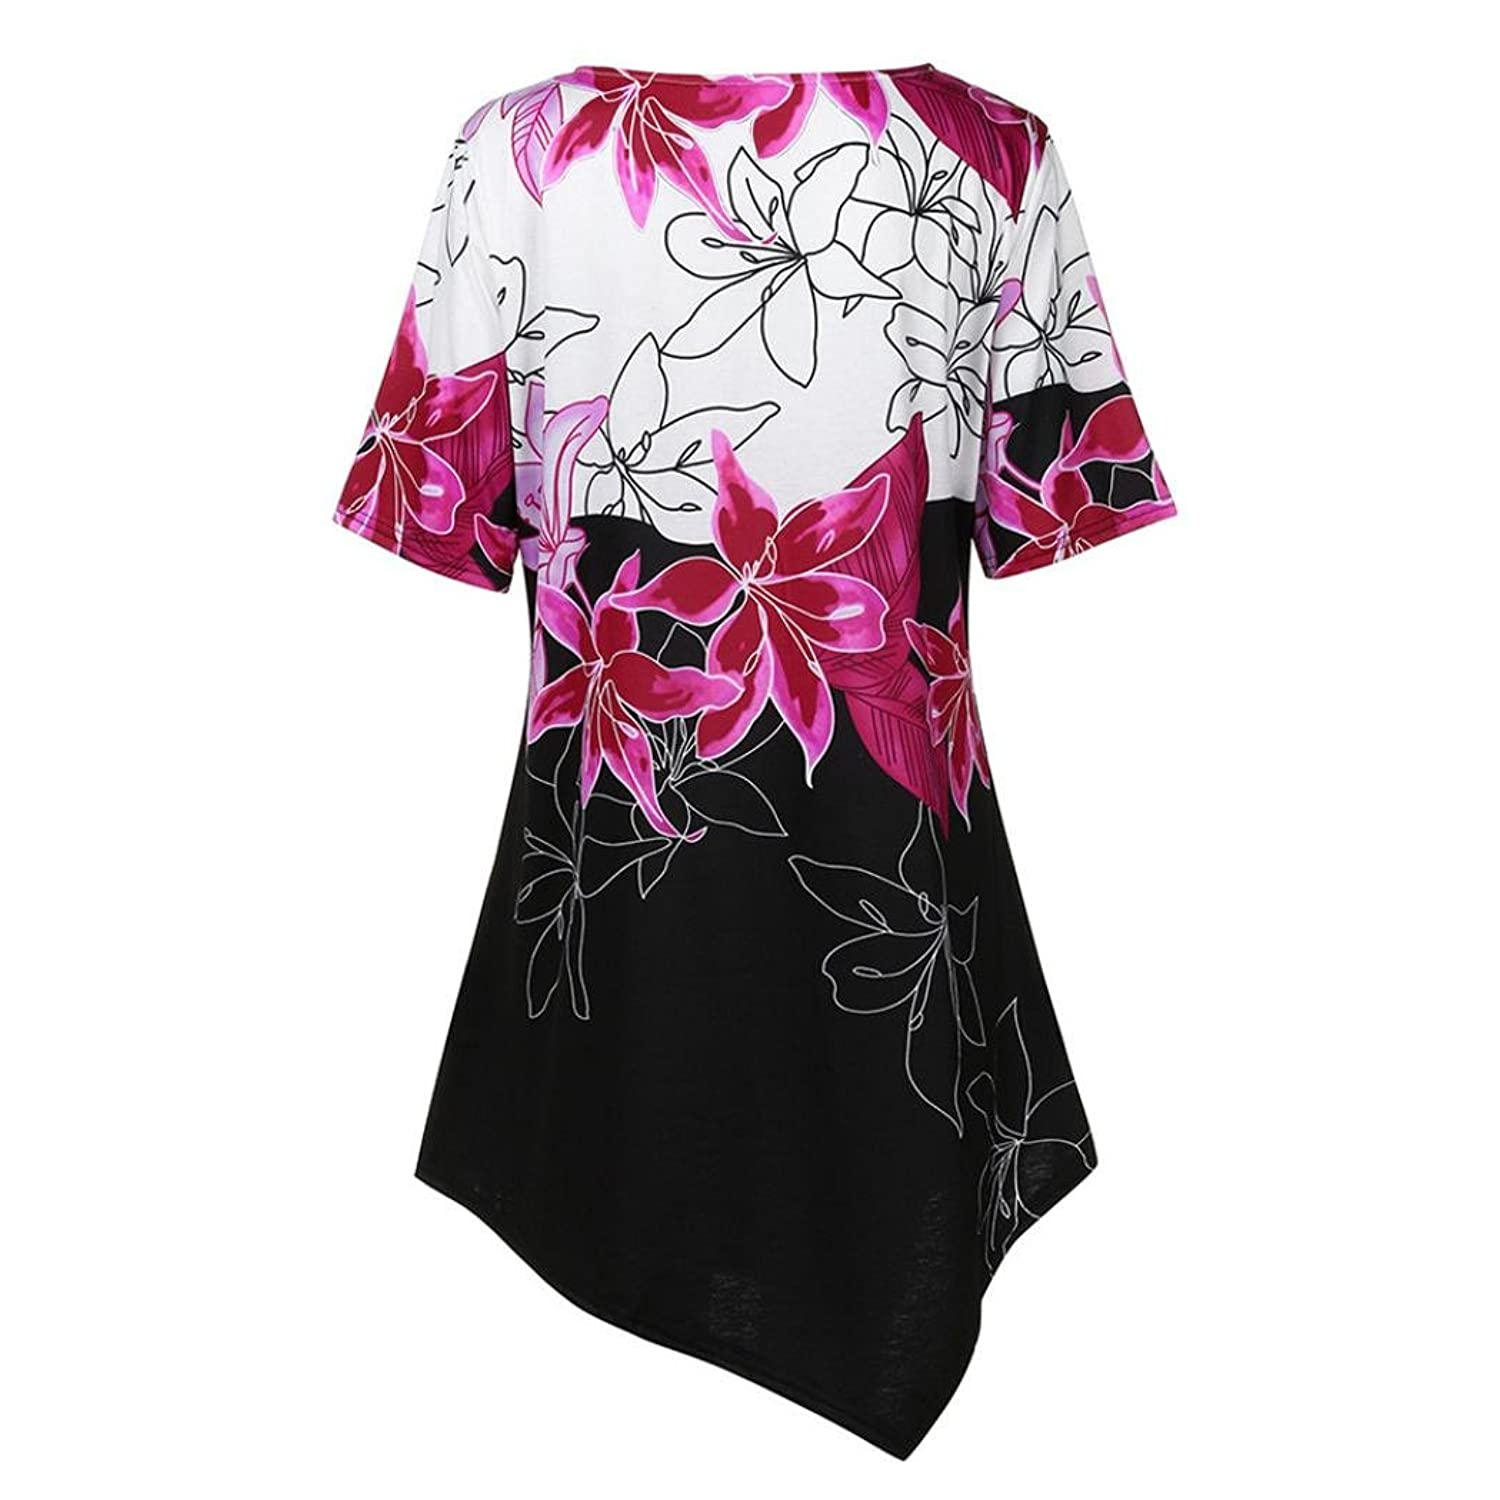 Yellow Summer Tops Plus Size Women Flowers Printing T-Shirt Short Sleeve Casual Blouse at Amazon Womens Clothing store: